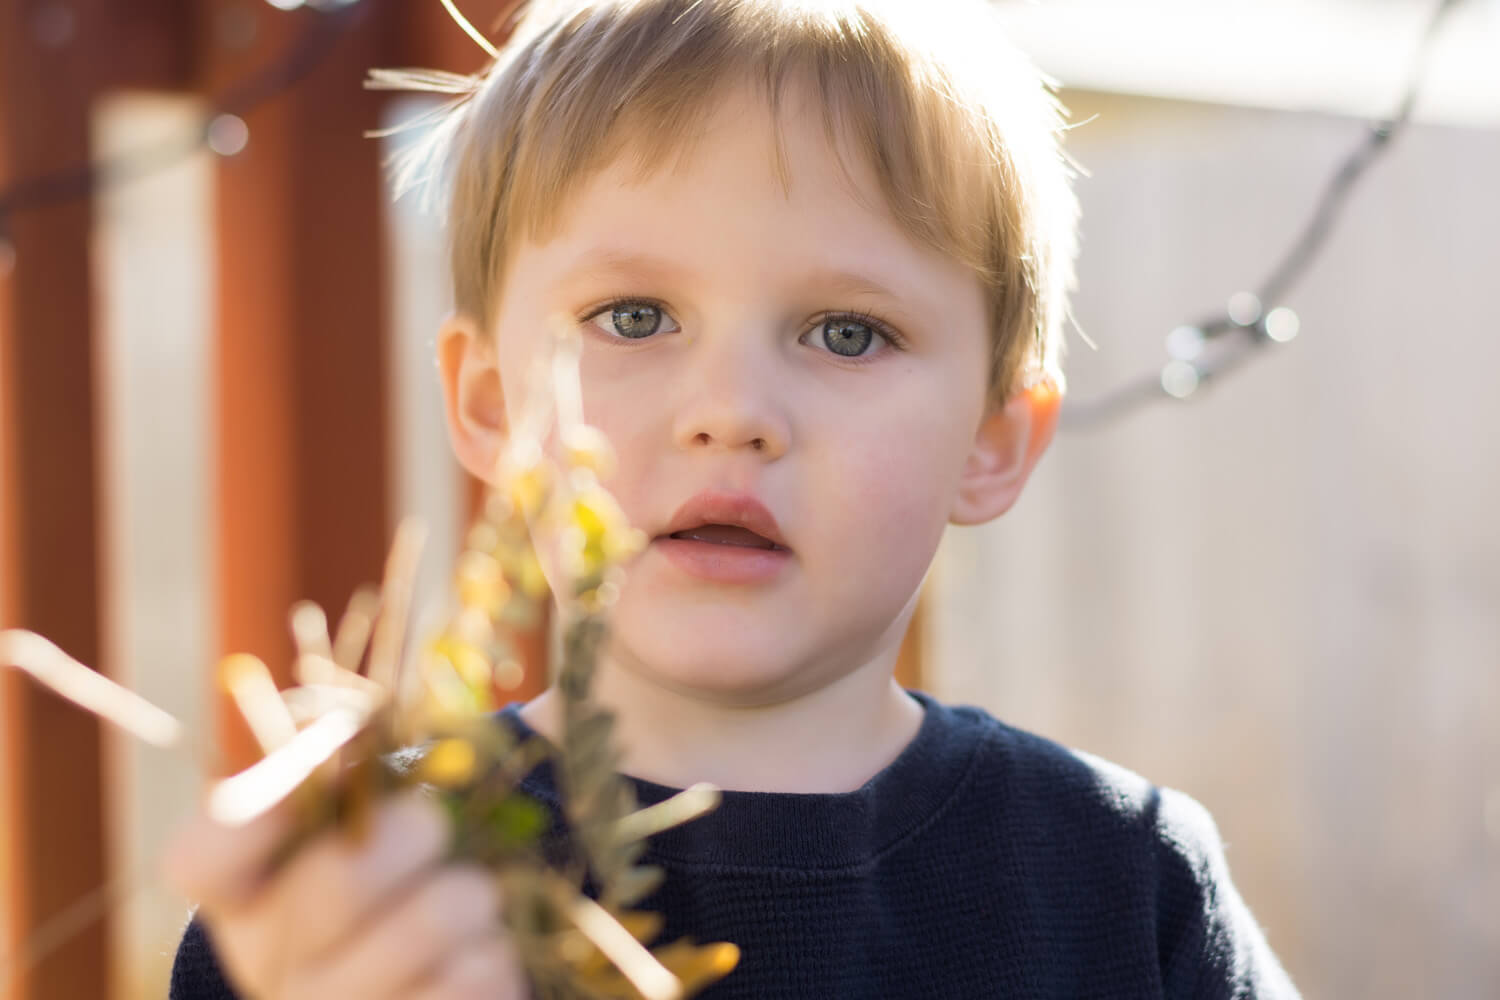 Portrait of a young child holding leaves in their hand